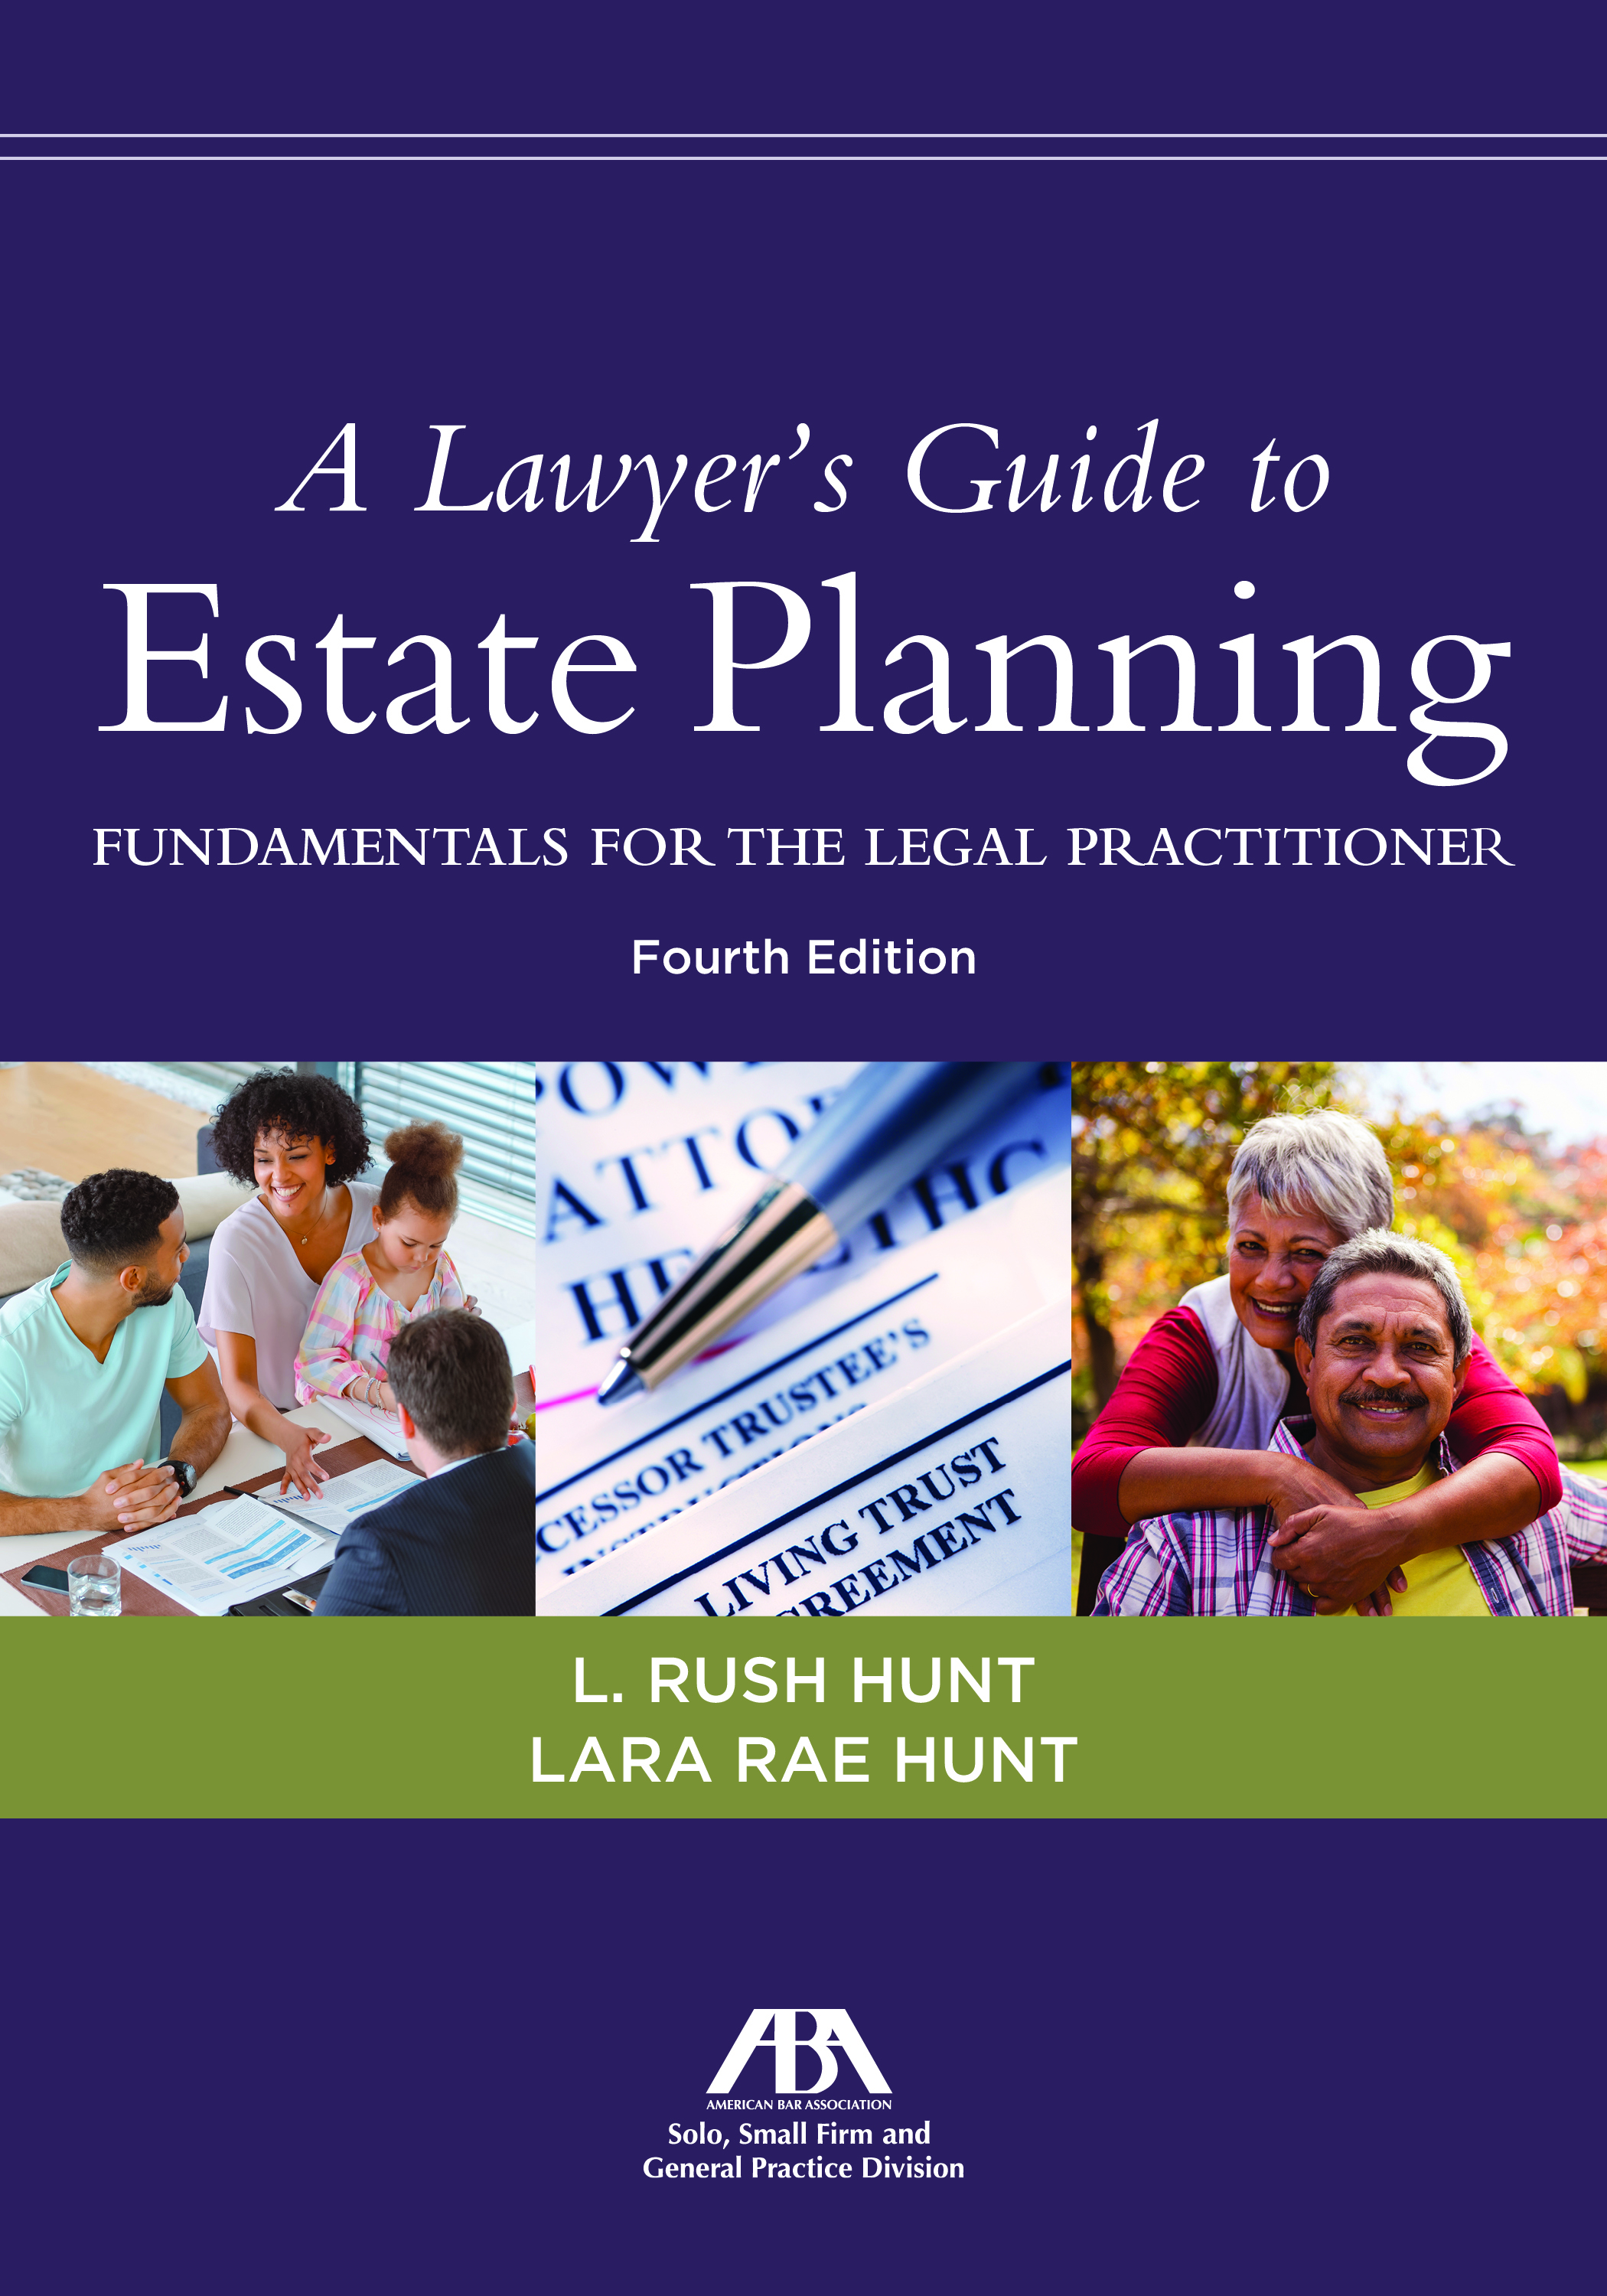 A Lawyer's Guide to Estate Planning: Fundamentals for the Legal Practitioner, Fourth Edition